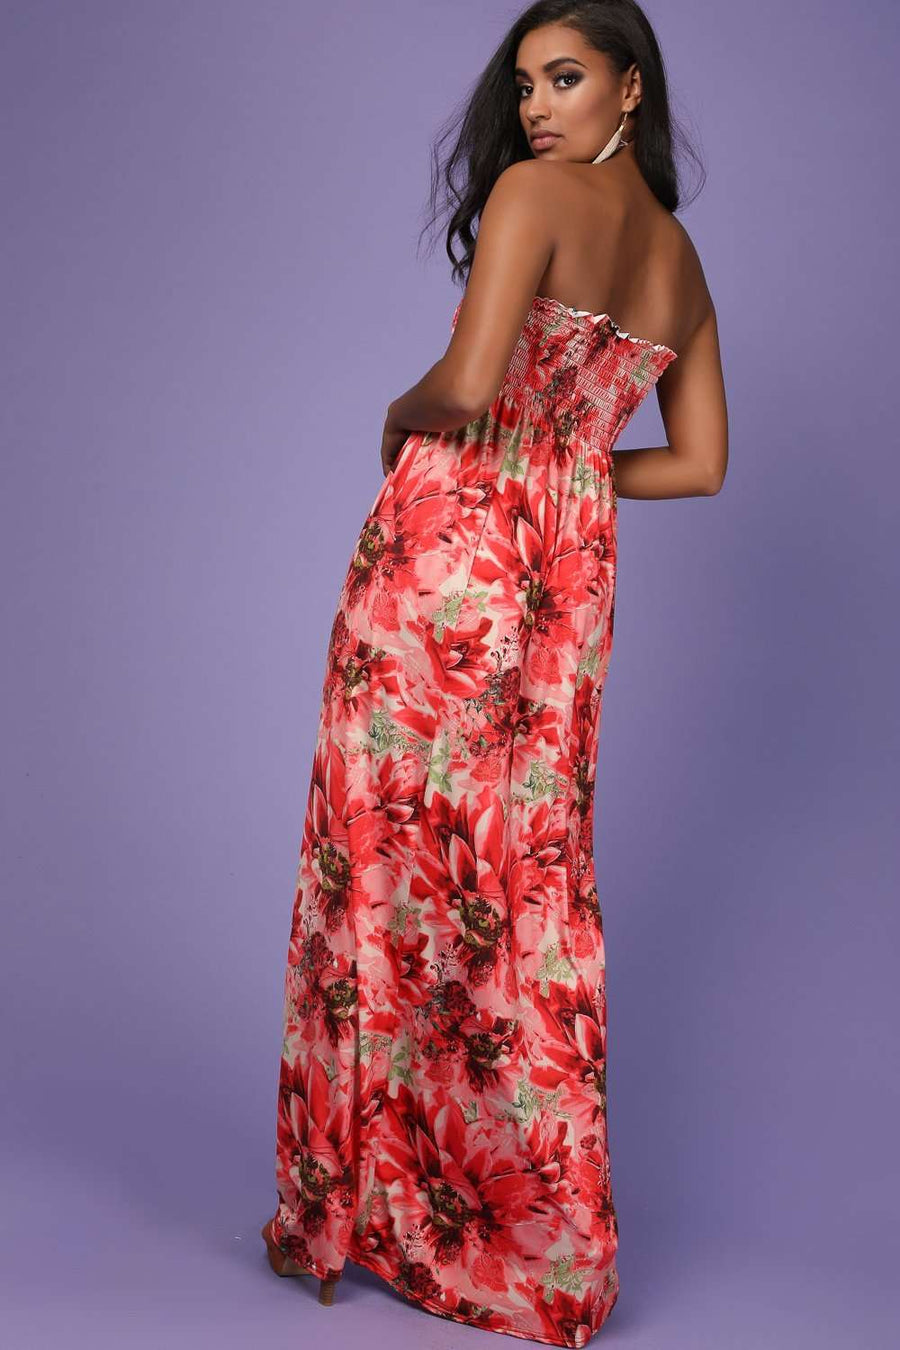 Alli Sheering Bardot Red Floral Maxi Dress - bejealous-com